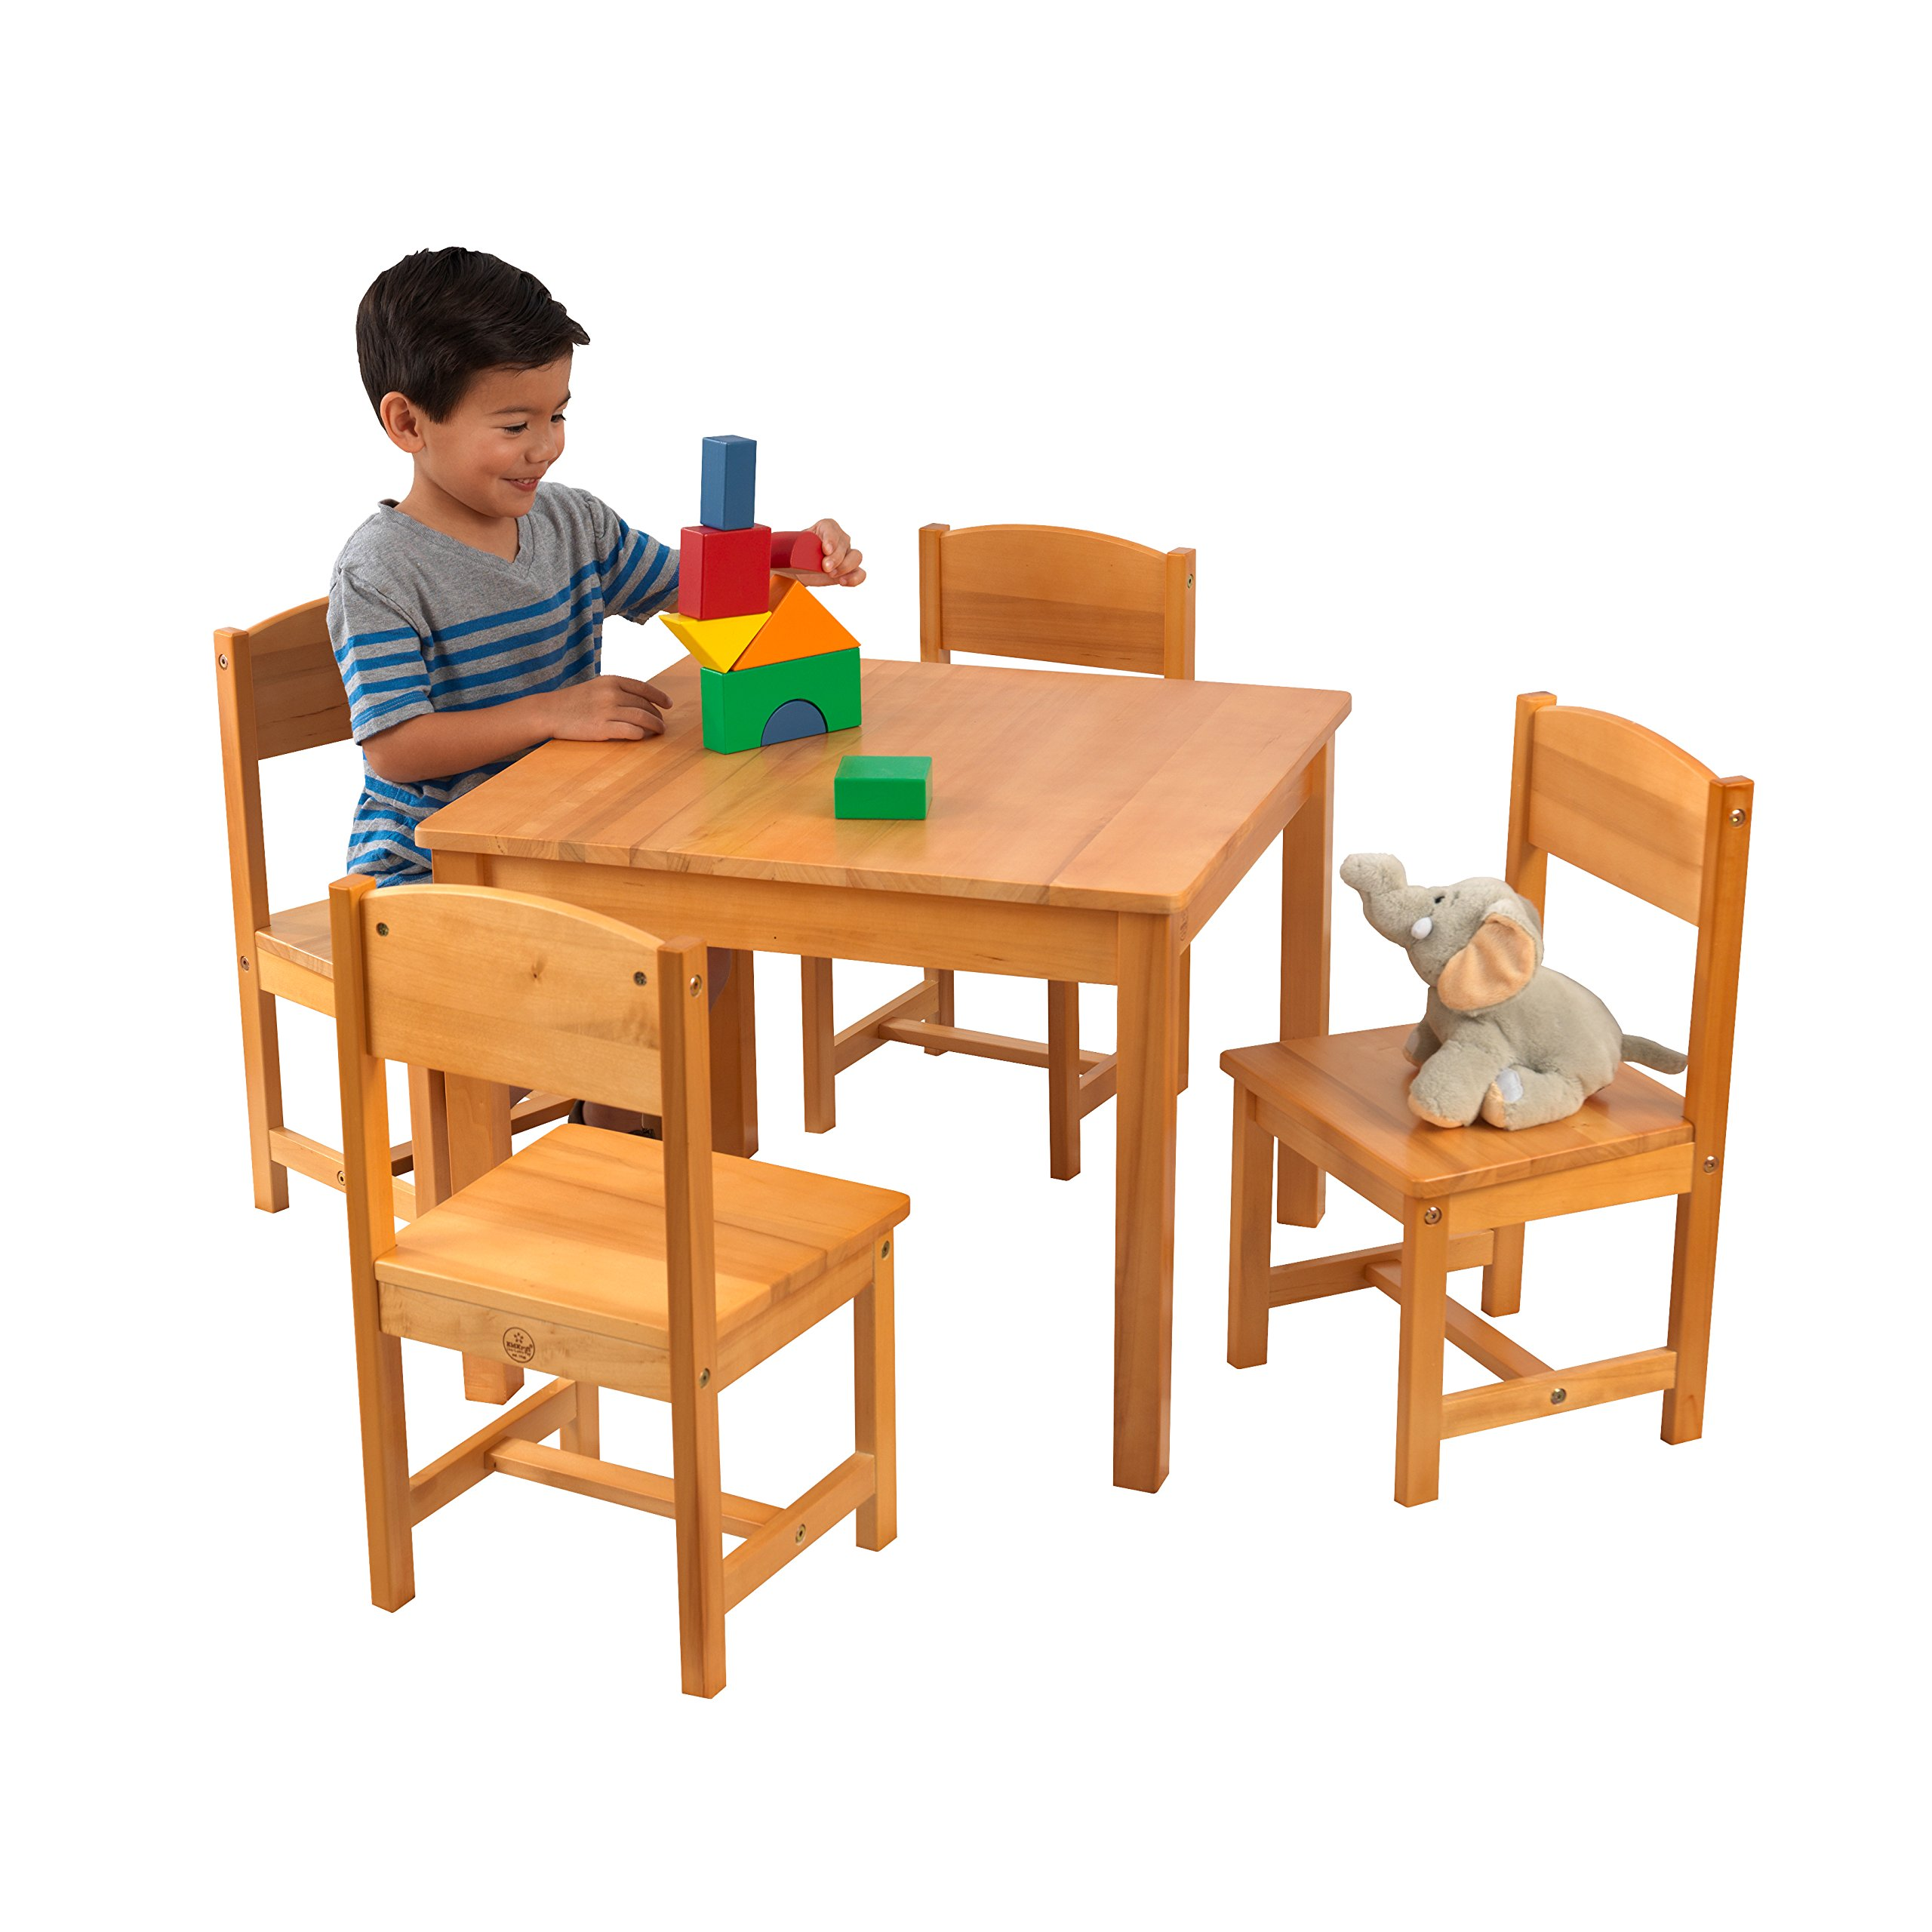 KidKraft Wooden Farmhouse Table & 4 Chairs Set, Children's Furniture for Arts & Activity - Natural by KidKraft